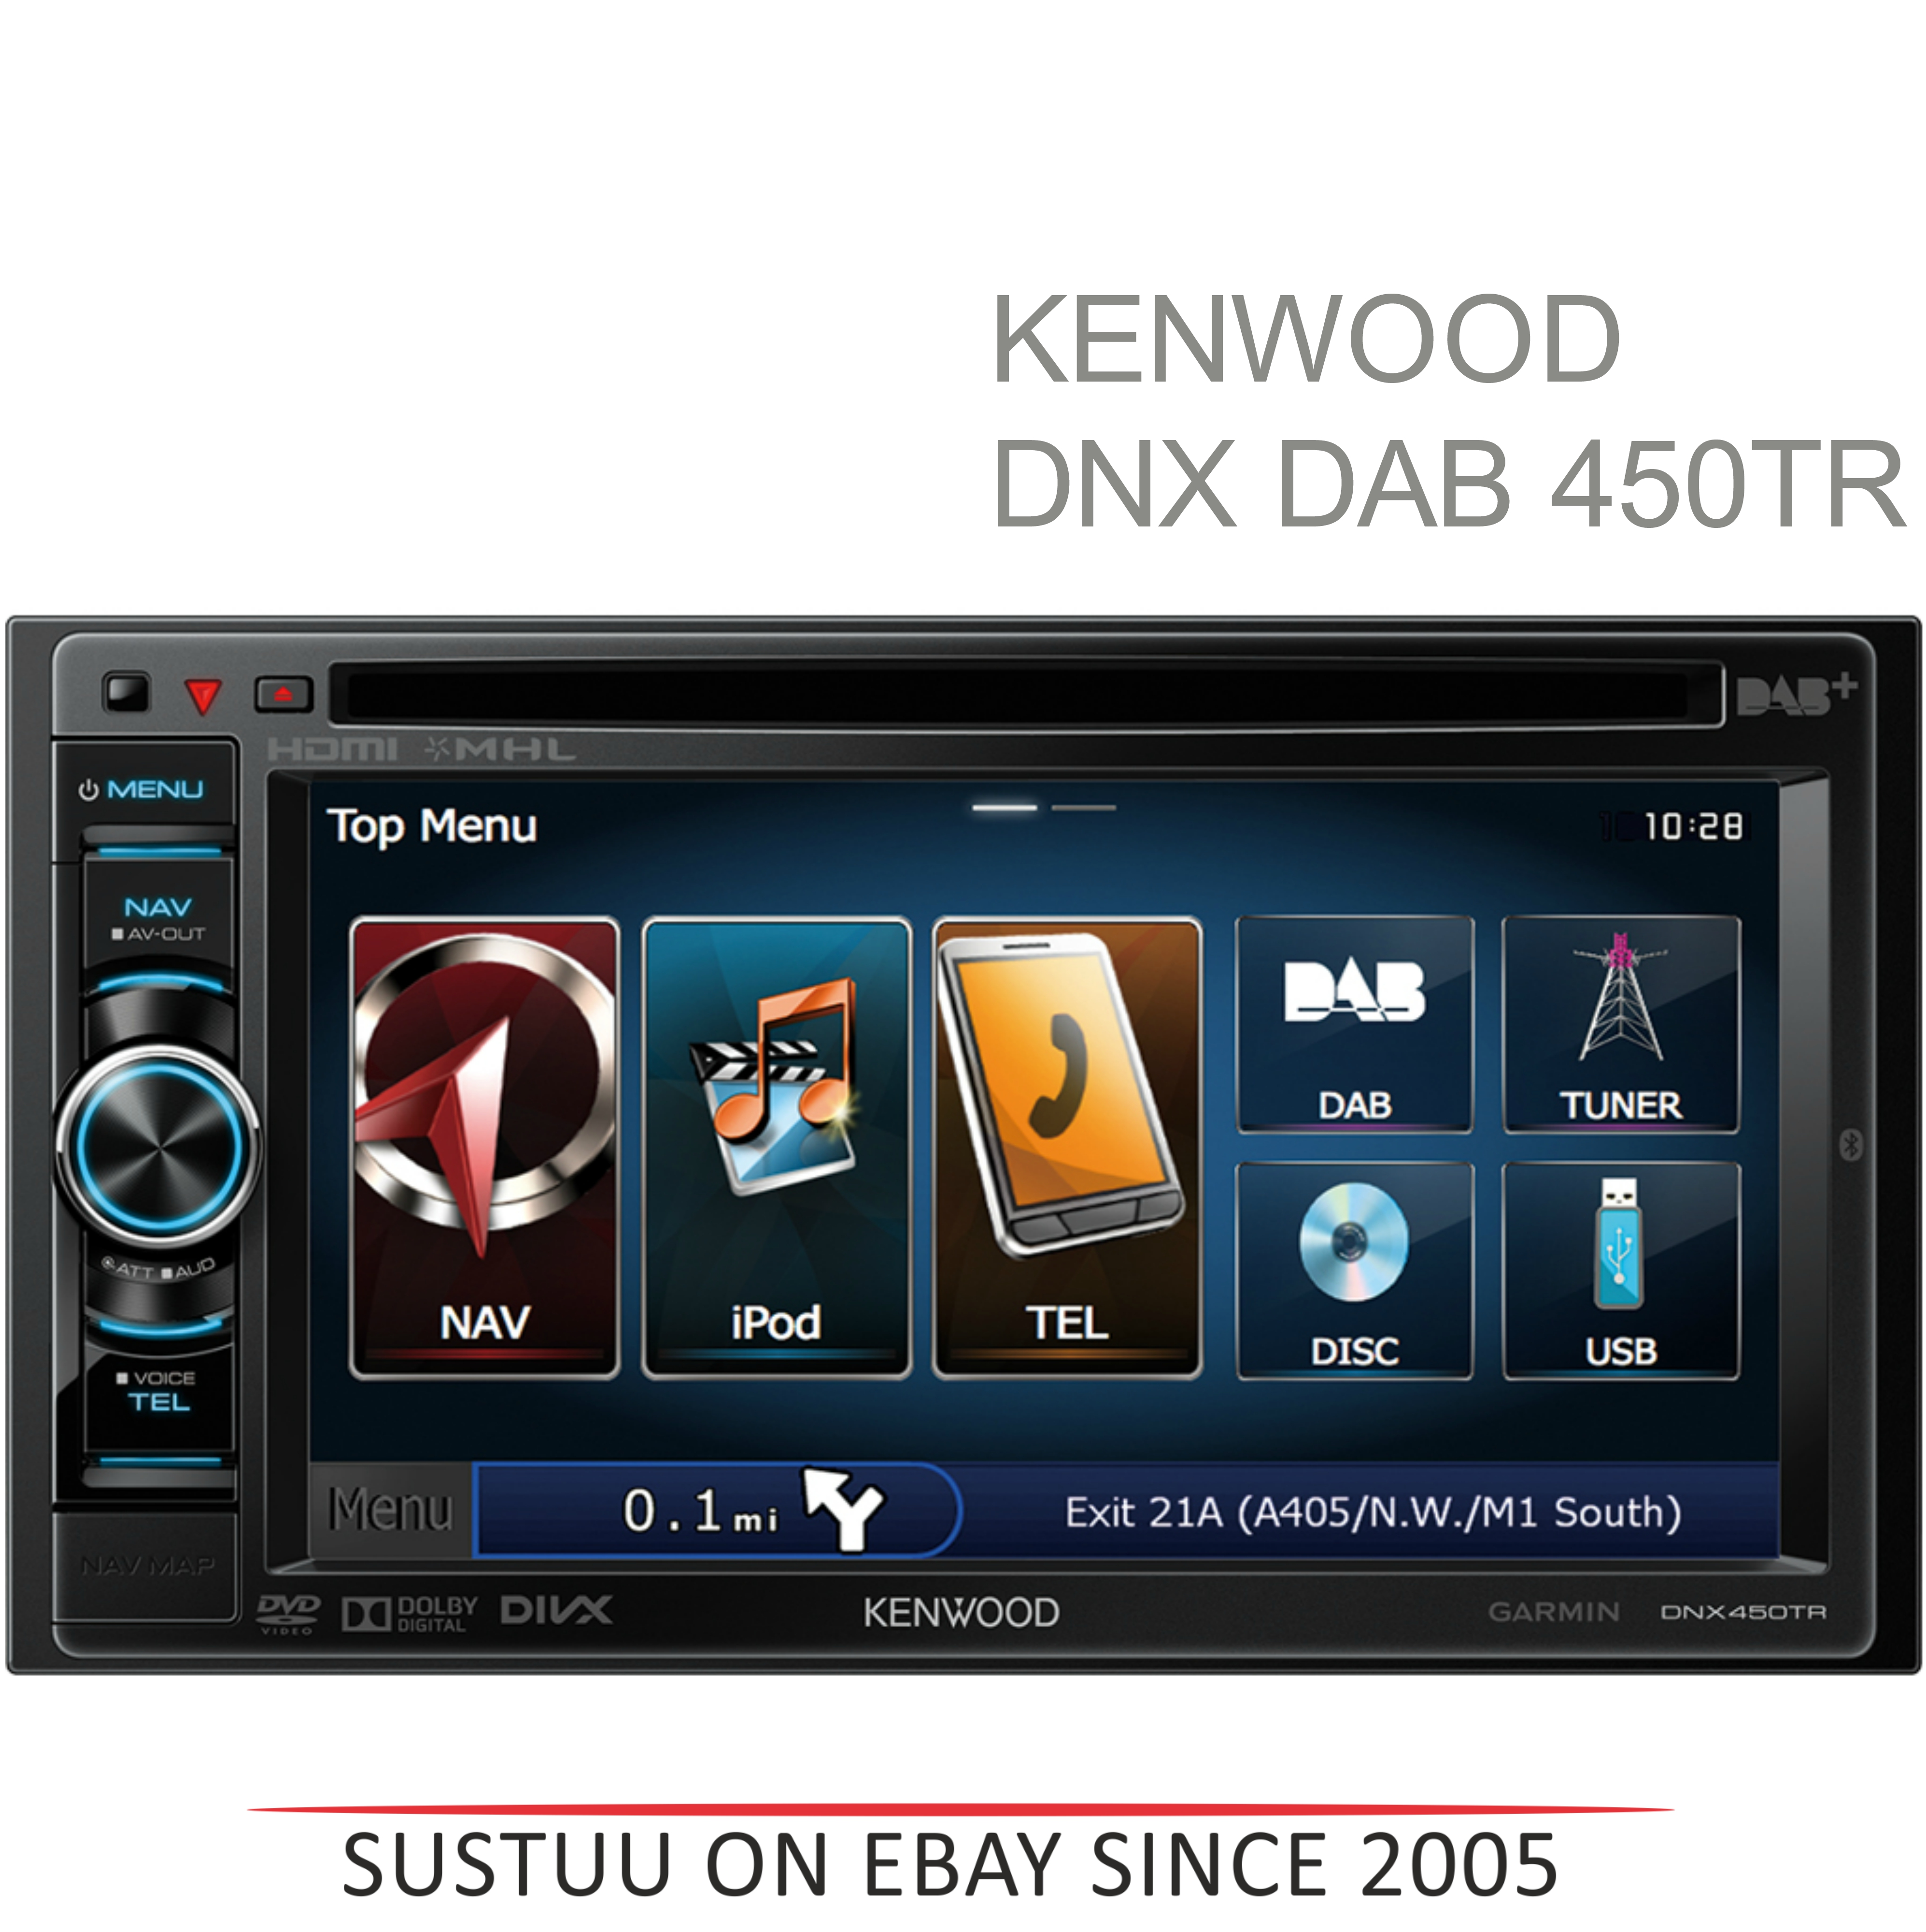 Product m Clarion Nx501e p 27186 besides Watch as well Kenwood KDC 317UR Autoradio in addition Dnx Dab 450tr Kenwood Dnx 450tr 6 1 Dvd Receiver Truckc er Sat Nav Bluetooth Dab Stereo further 2008 Chrysler Touch Screen Radio Wiring Diagram. on kenwood car stereo with gps